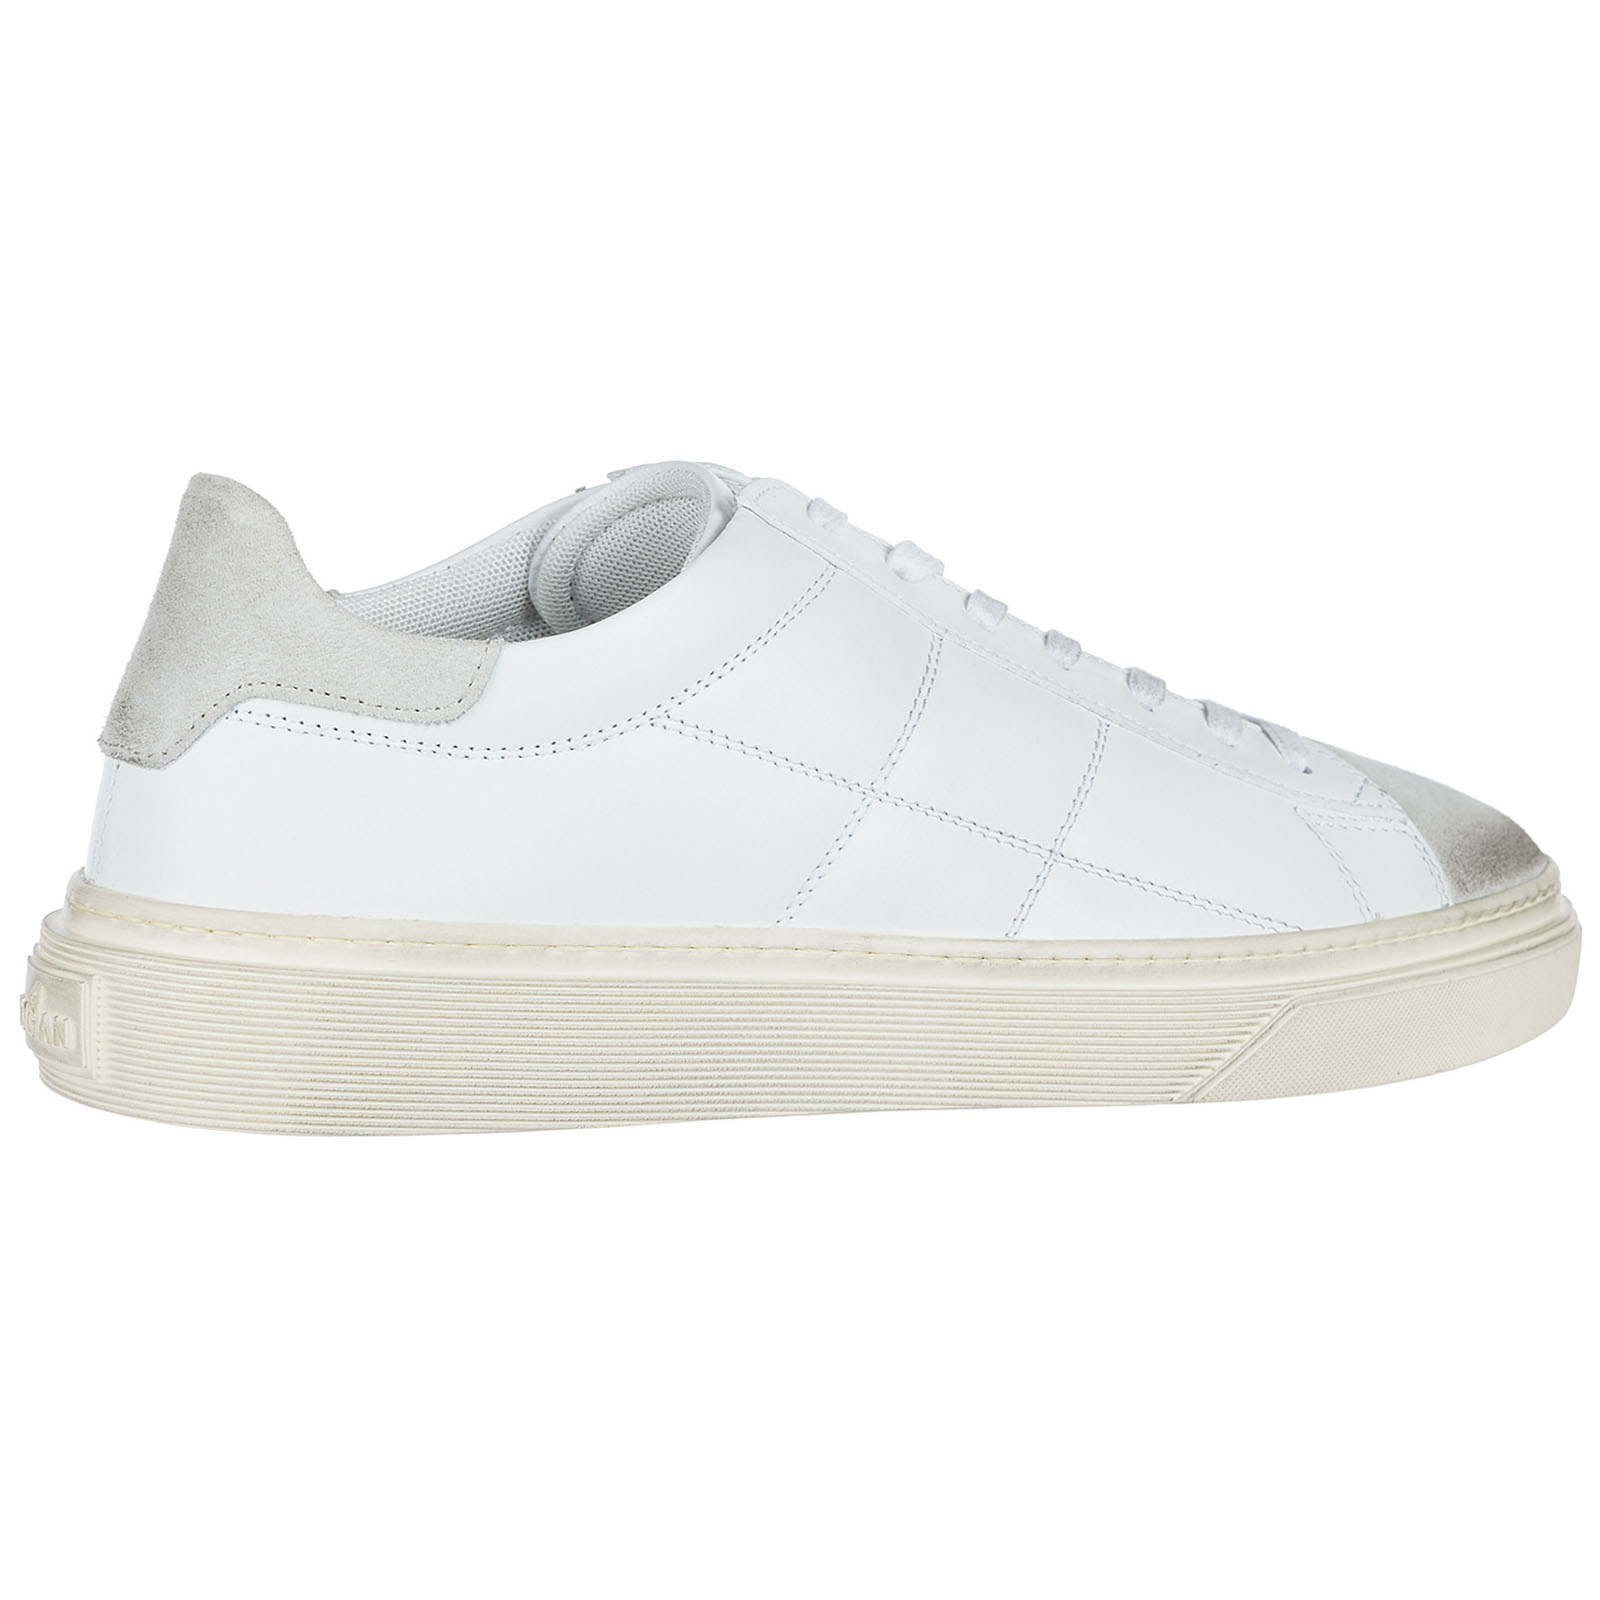 Men's shoes leather trainers sneakers h340